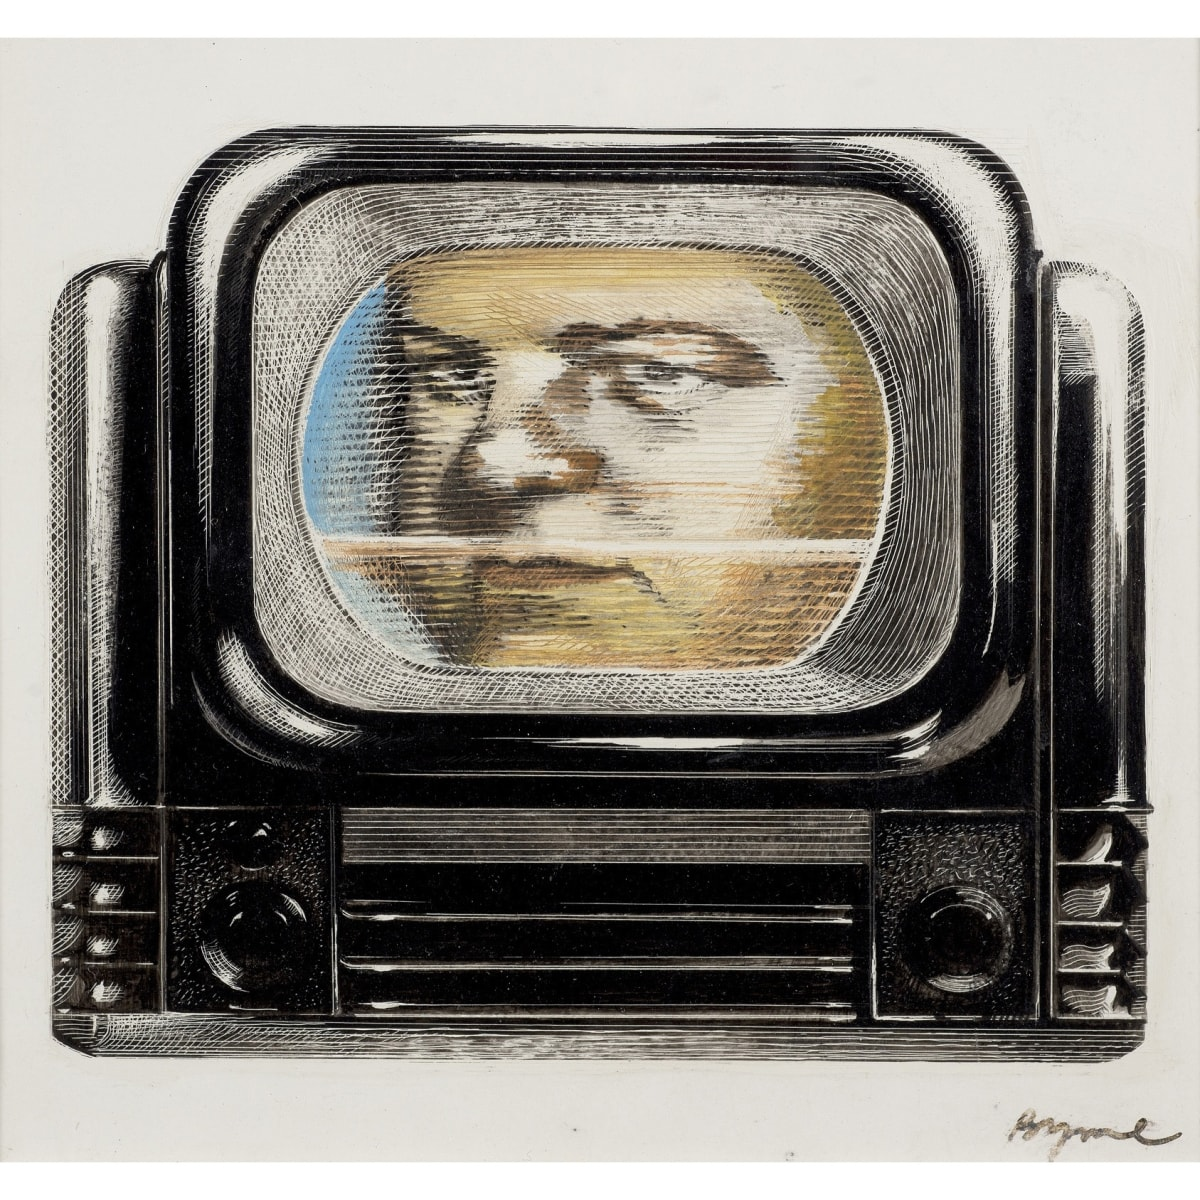 John Byrne Robbie Coltrane as Danny McGlone on the TV, from Tutti Frutti, 1985-6 signed watercolour, pen and ink 5 x 5 inches